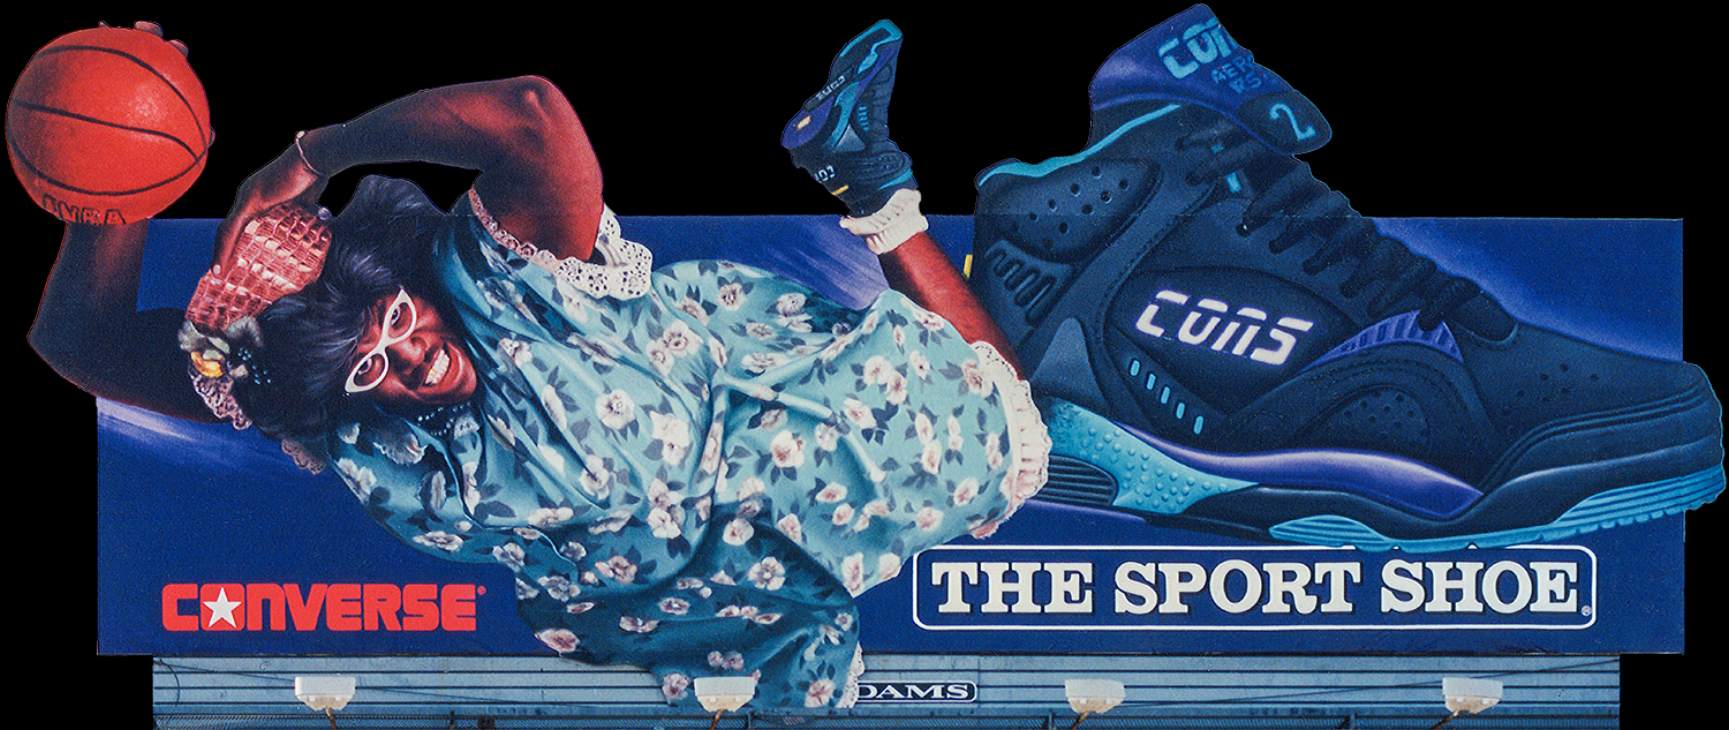 """Outdoor Advertising- """"Nike, Basketball GrandMa"""" Larry Johnson • The Sports Shoe. Designed & Illustrated this 14' by 48' billboard. © KT"""